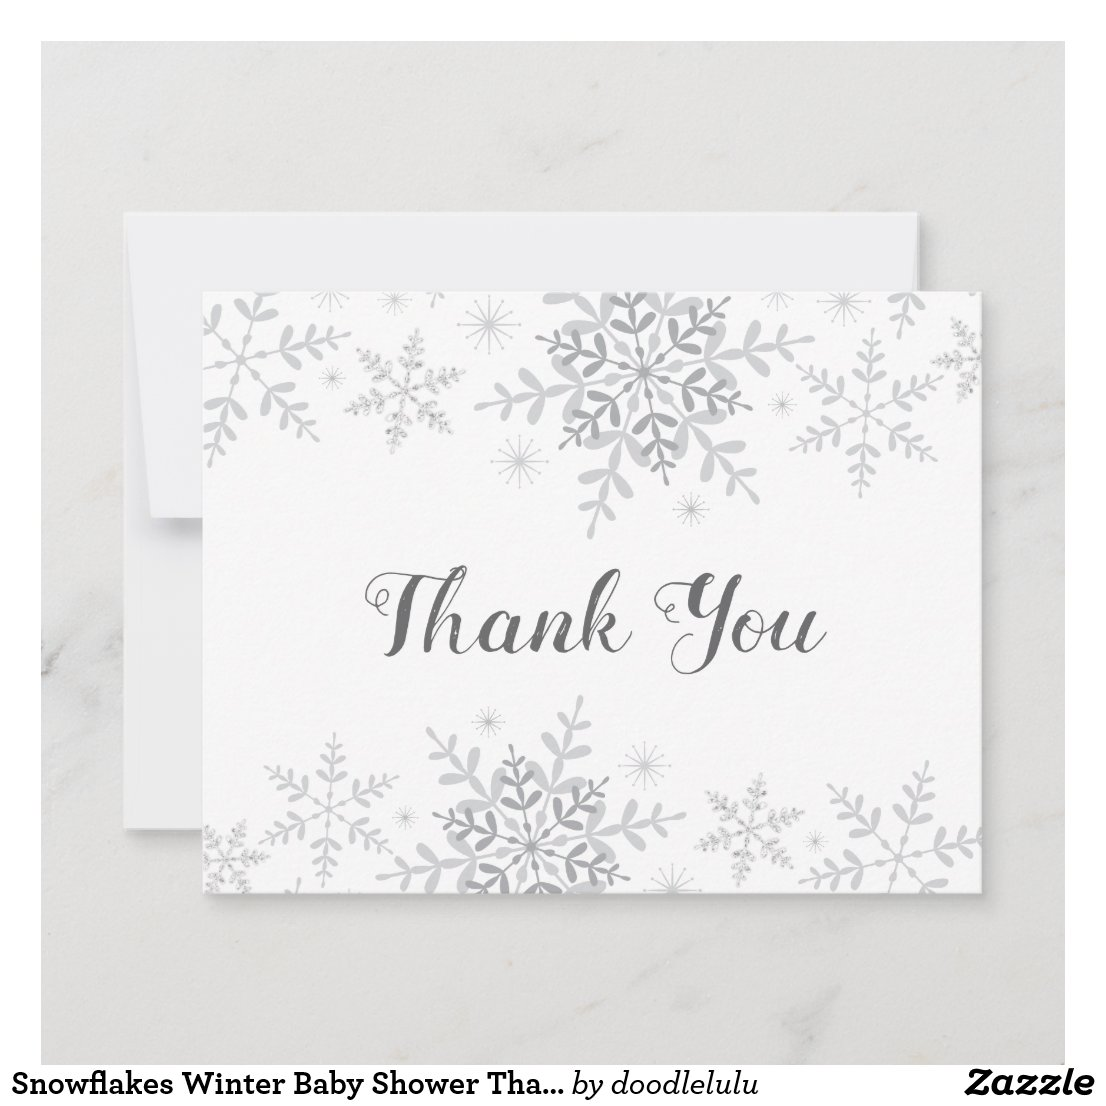 Snowflakes Winter Baby Shower Thank You Card